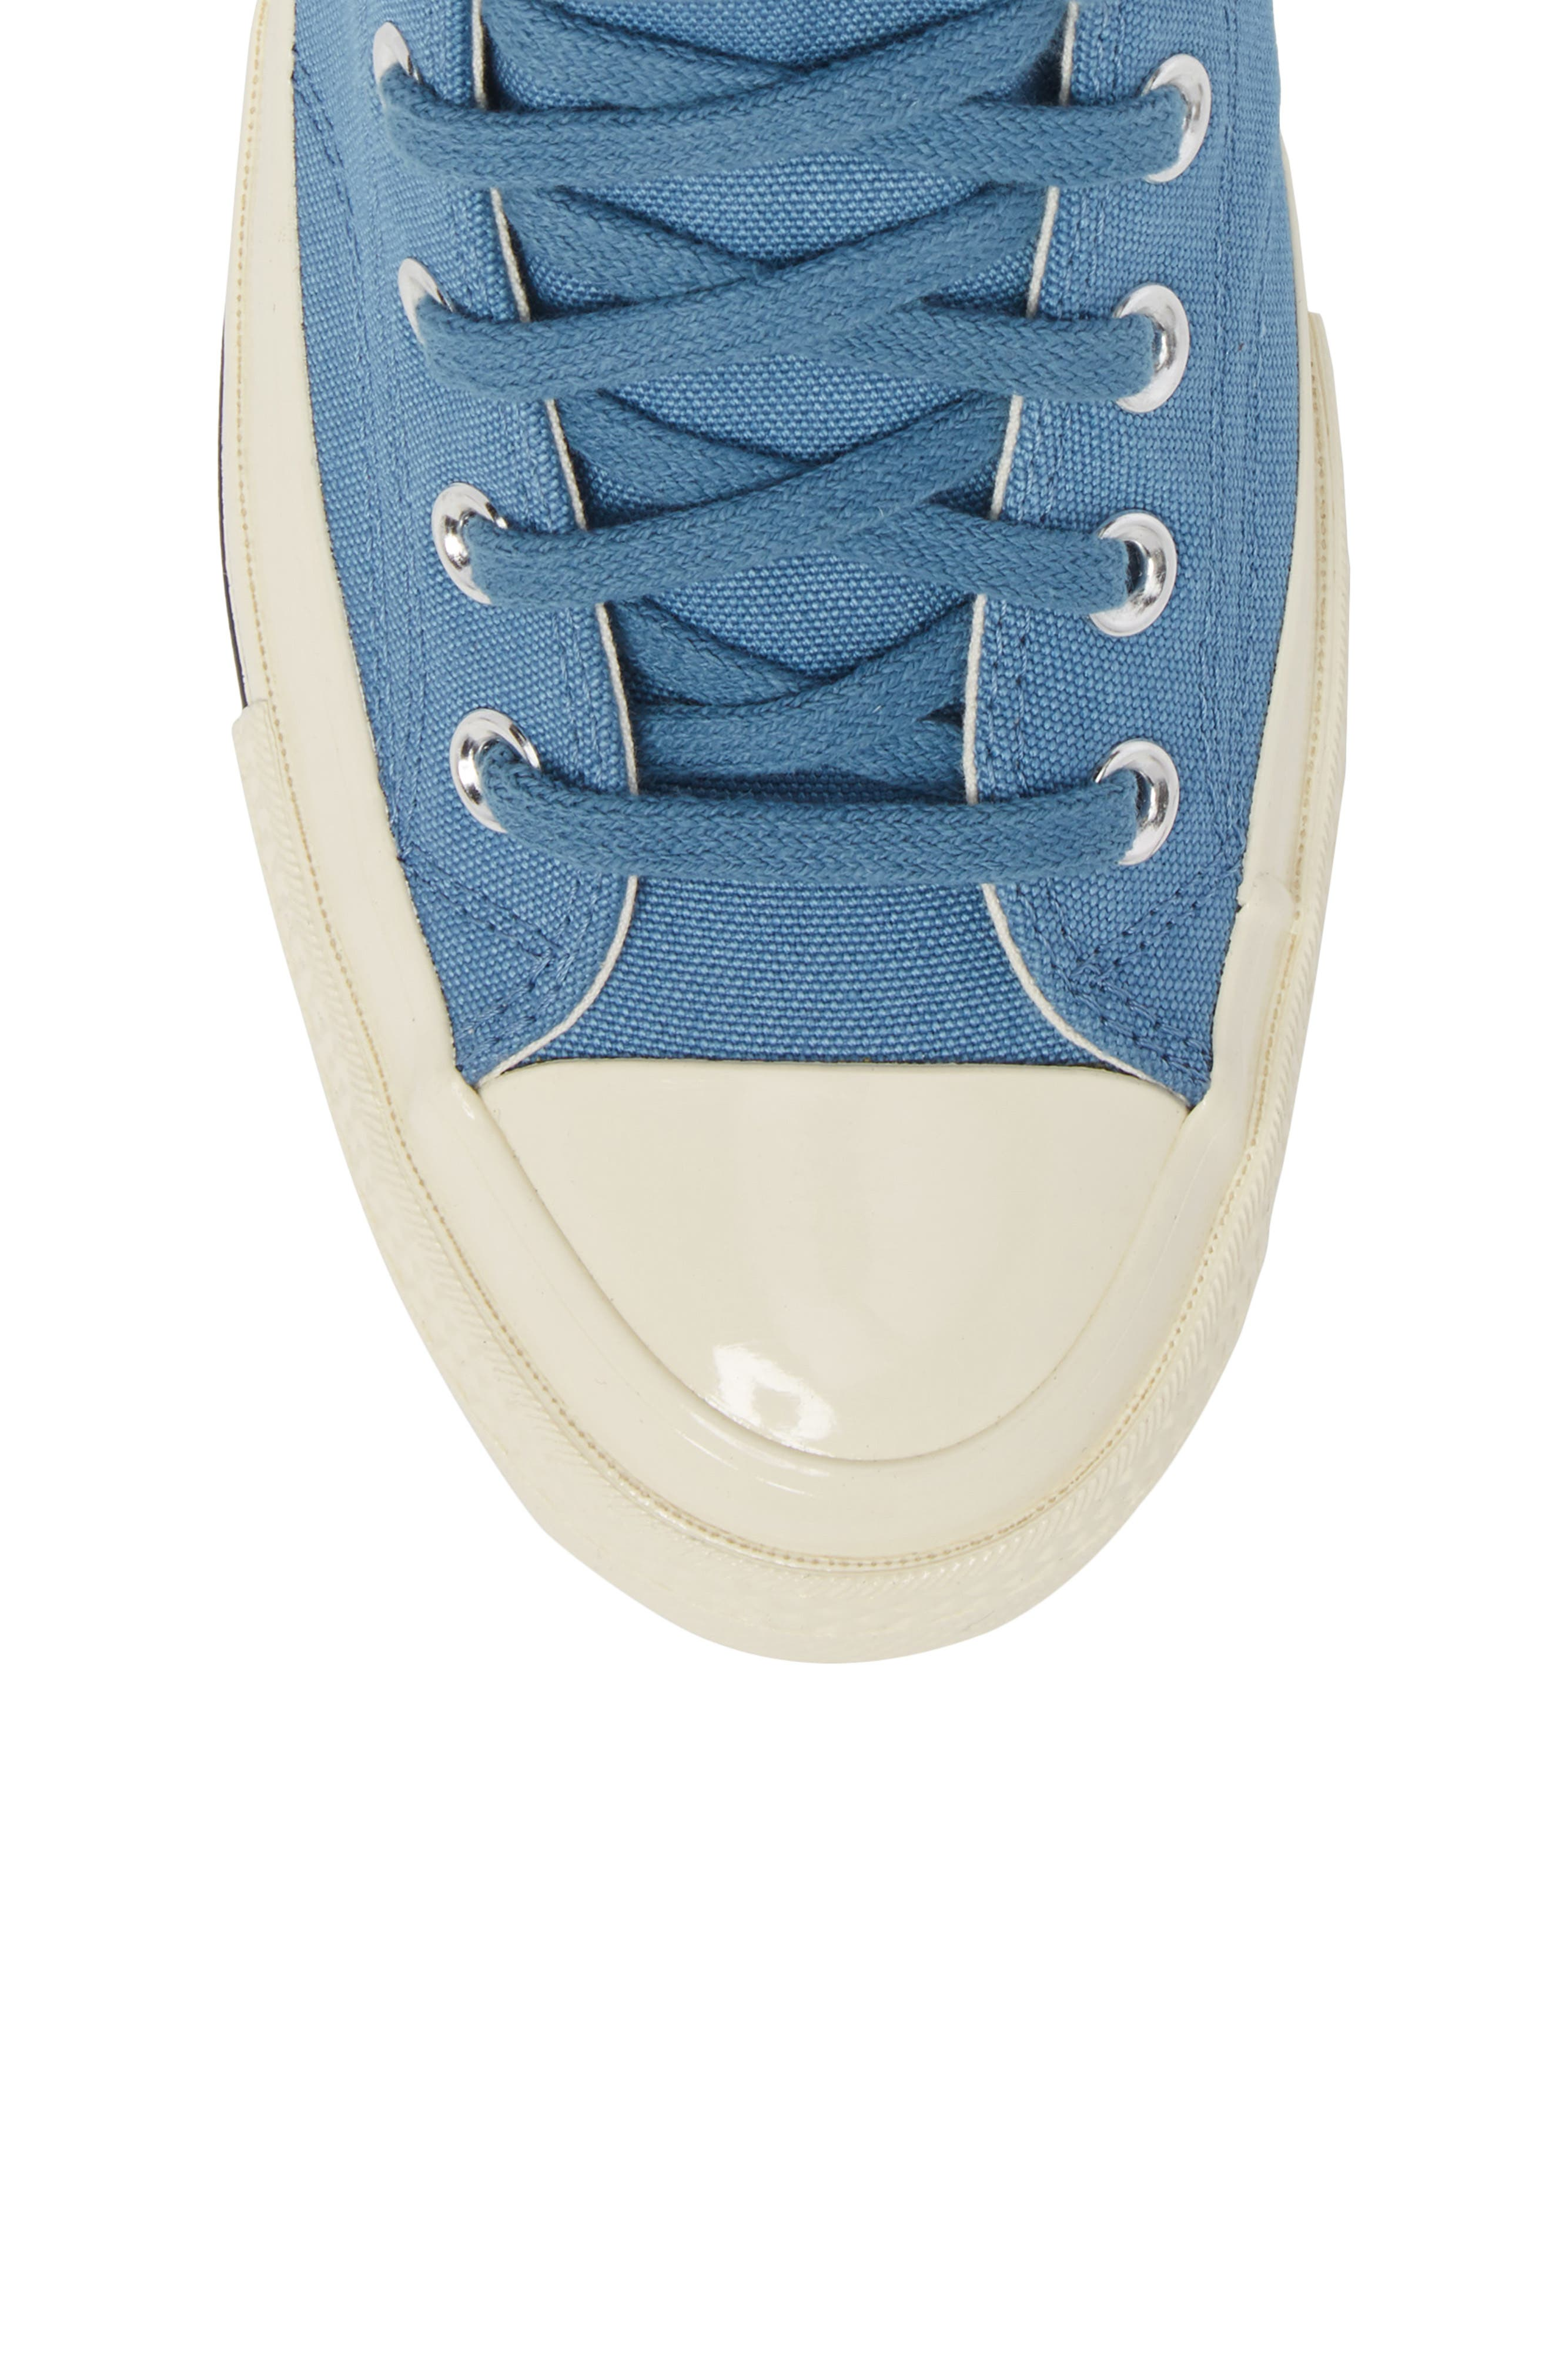 Chuck Taylor<sup>®</sup> All Star<sup>®</sup> '70s Heritage High Top Sneaker,                             Alternate thumbnail 5, color,                             400